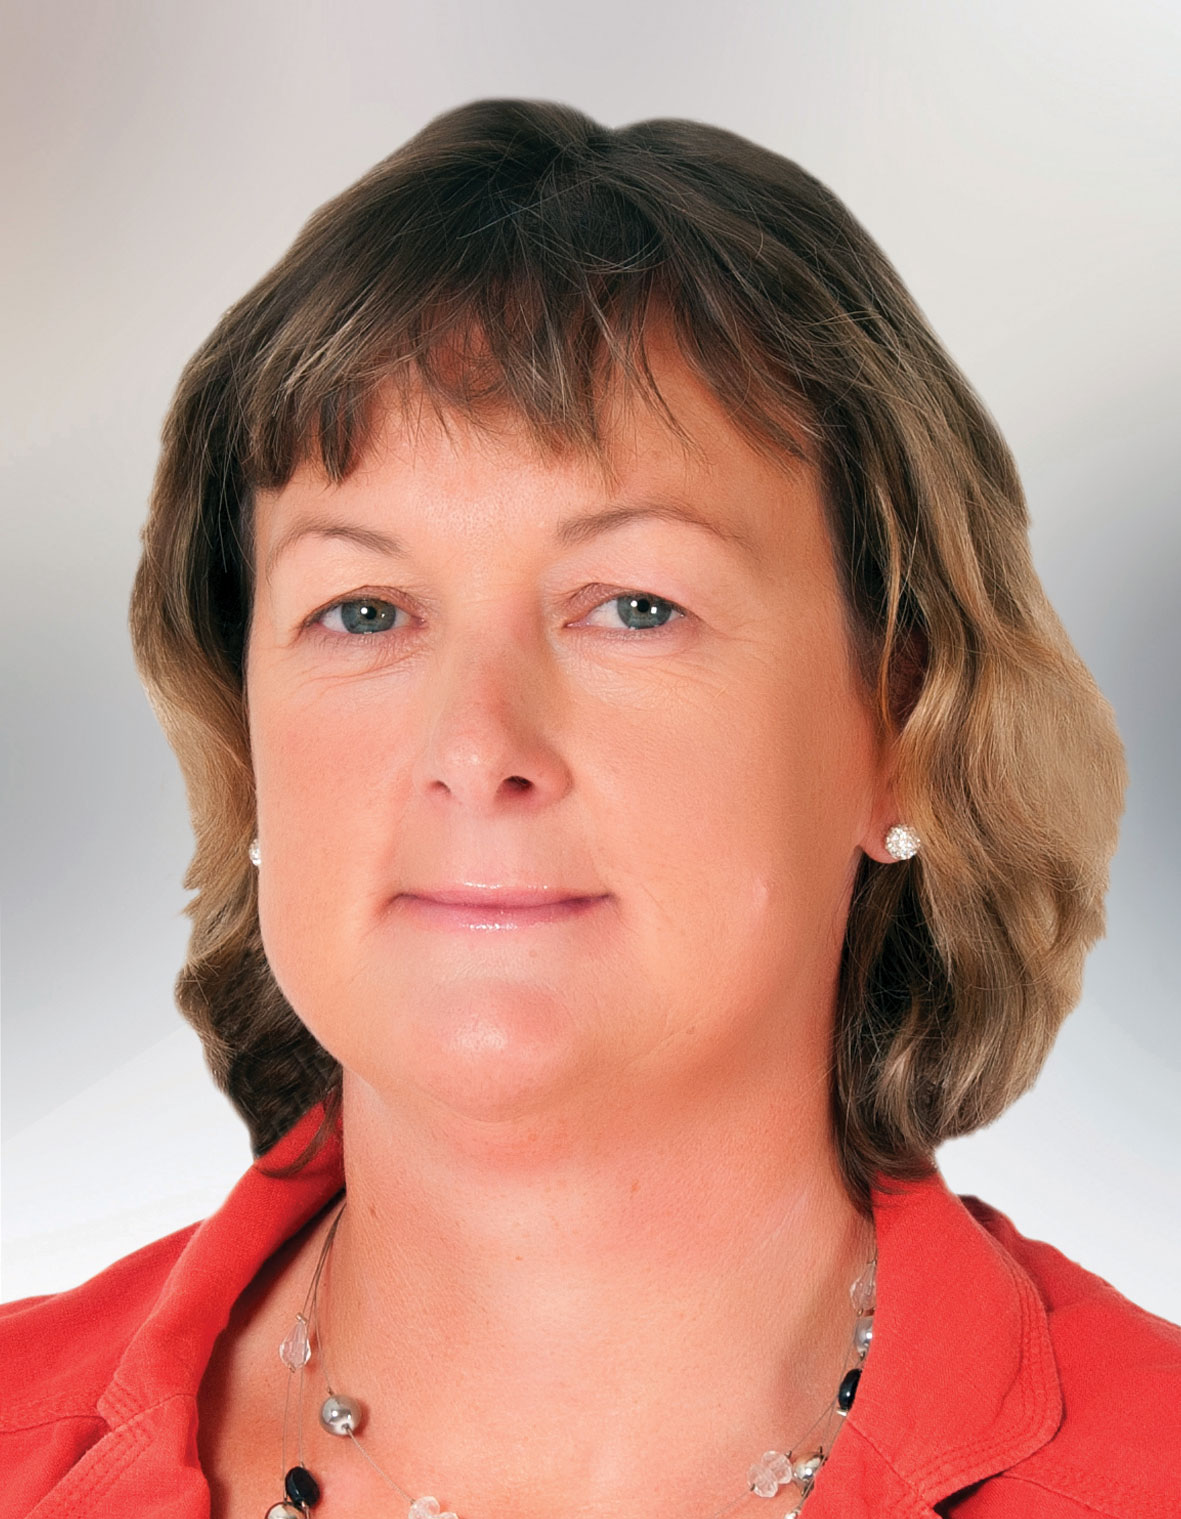 A Waterford councillor says local politics is getting harder for women.